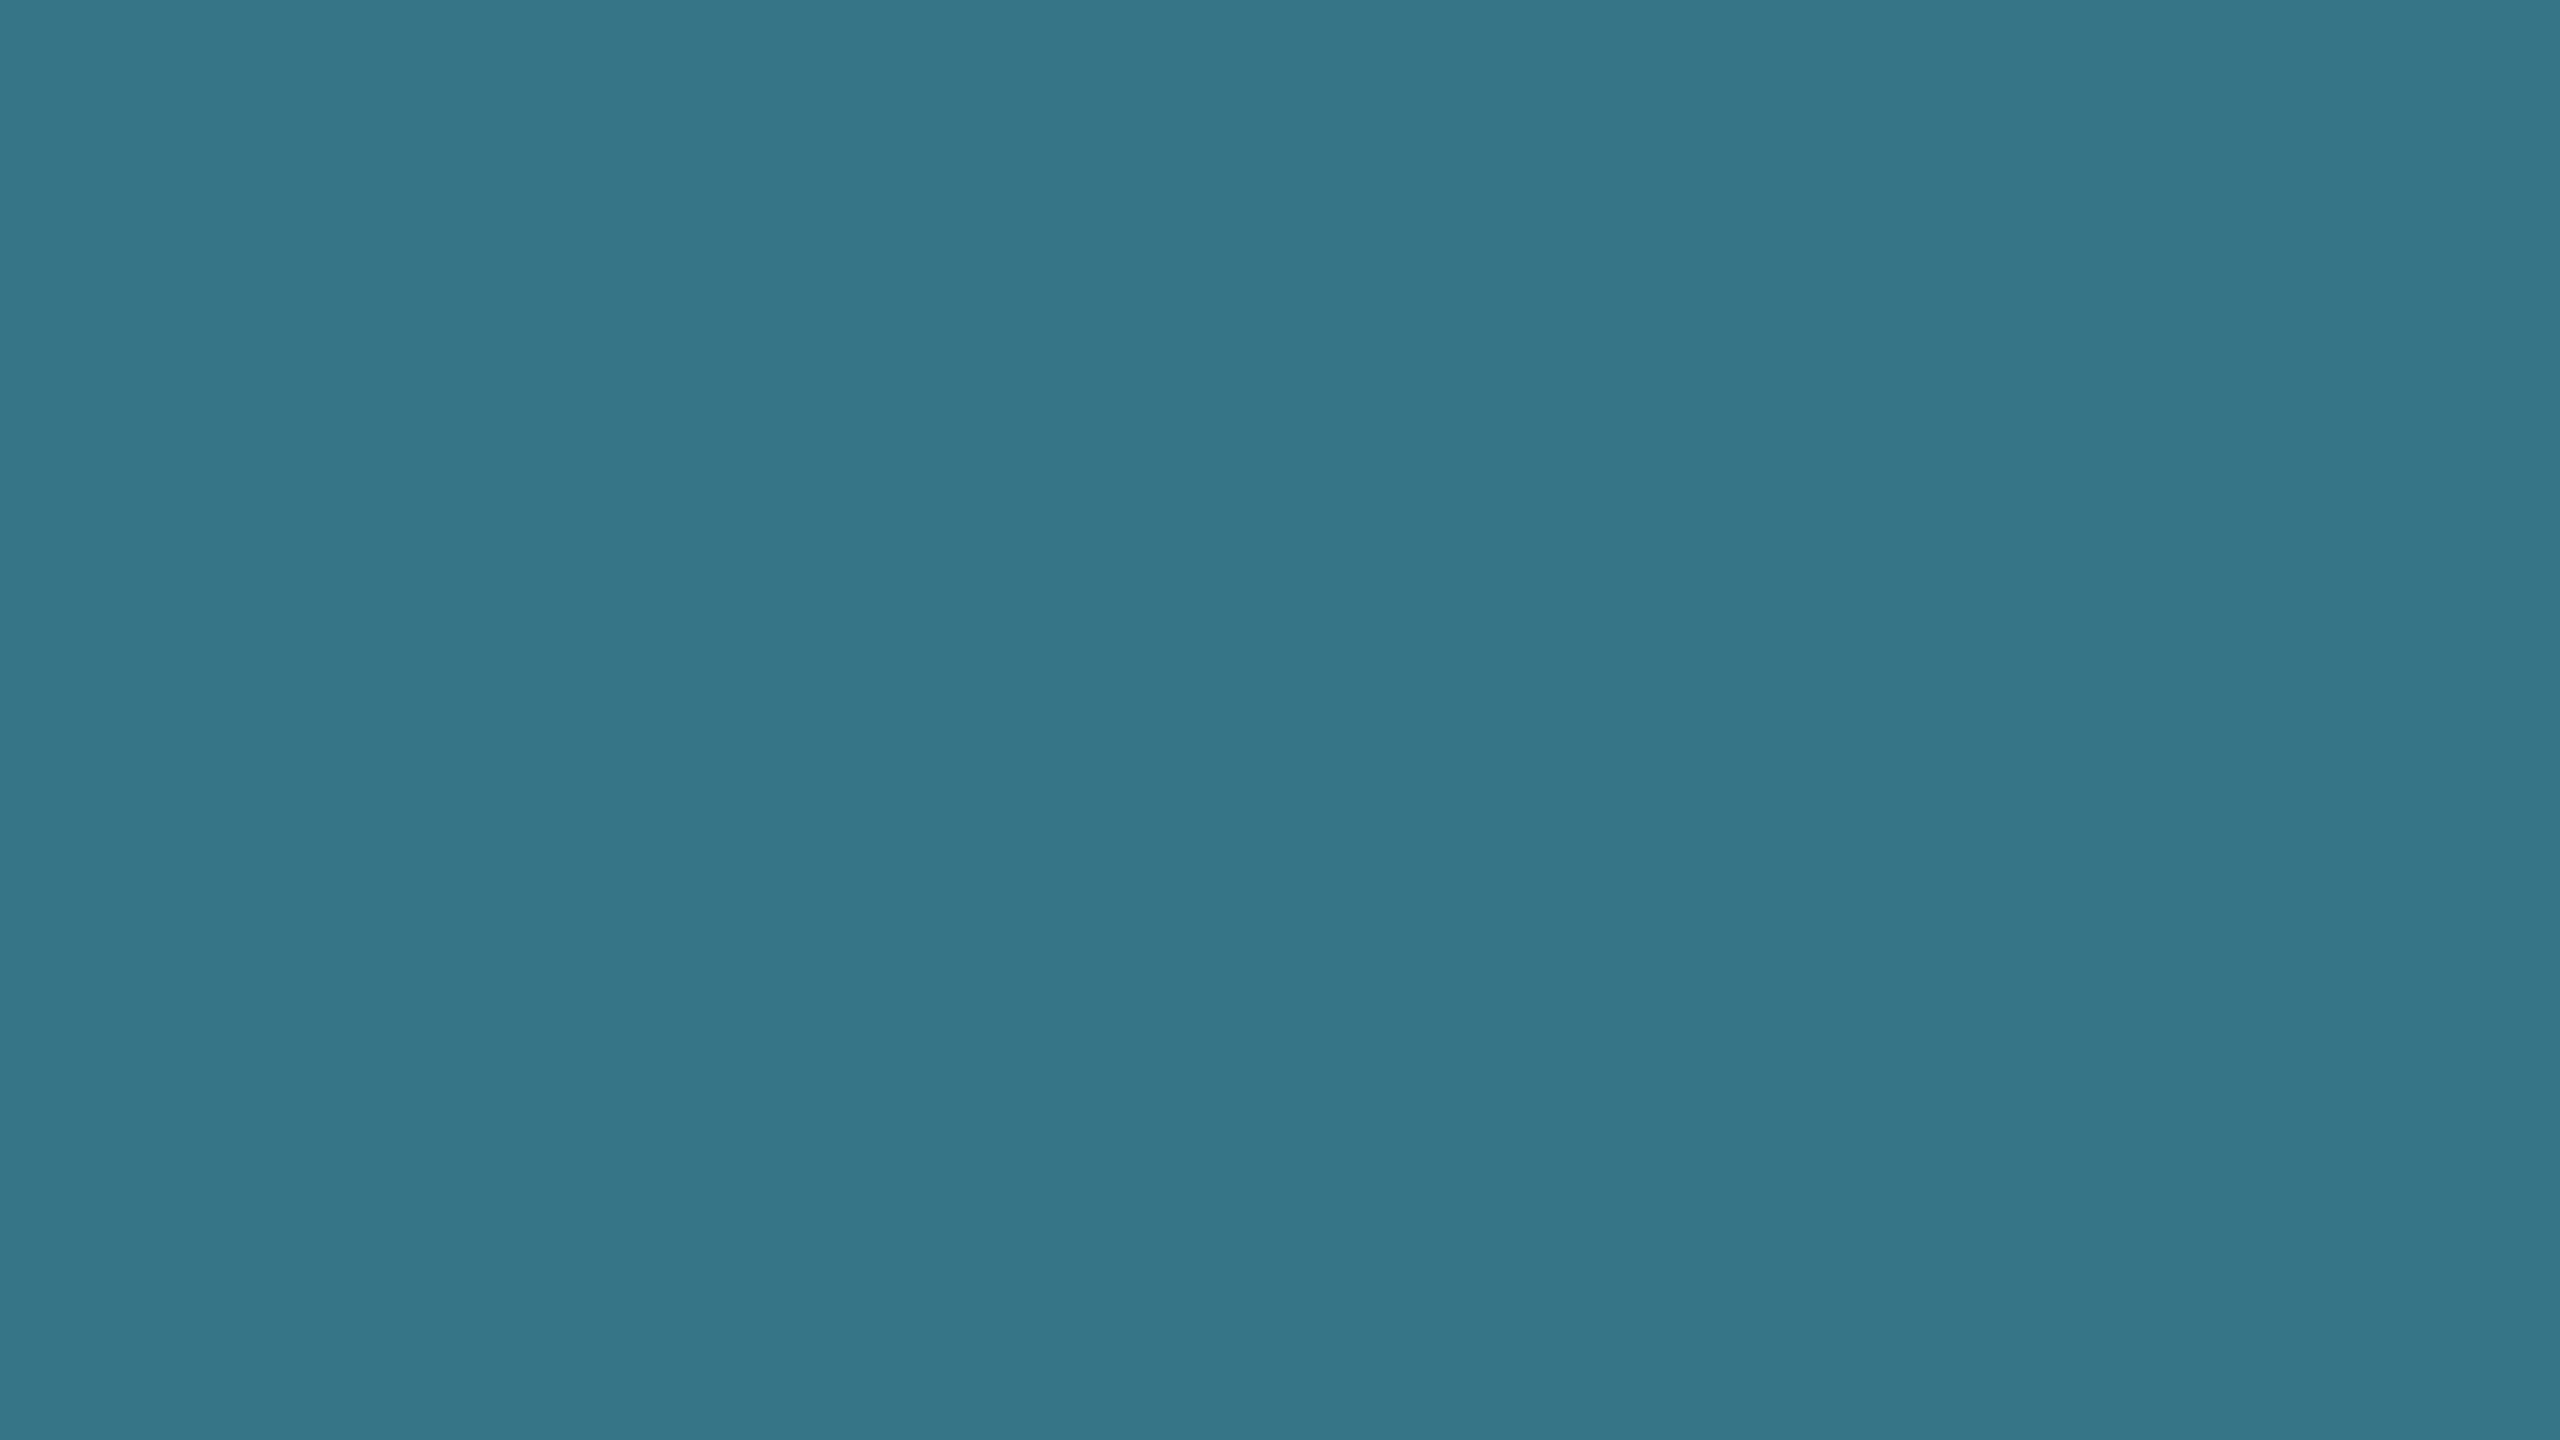 Indoor 2560x1440 Blue Solid Color Background Blue Color Code Cmyk Blue Color Palette houzz-02 Teal Blue Color